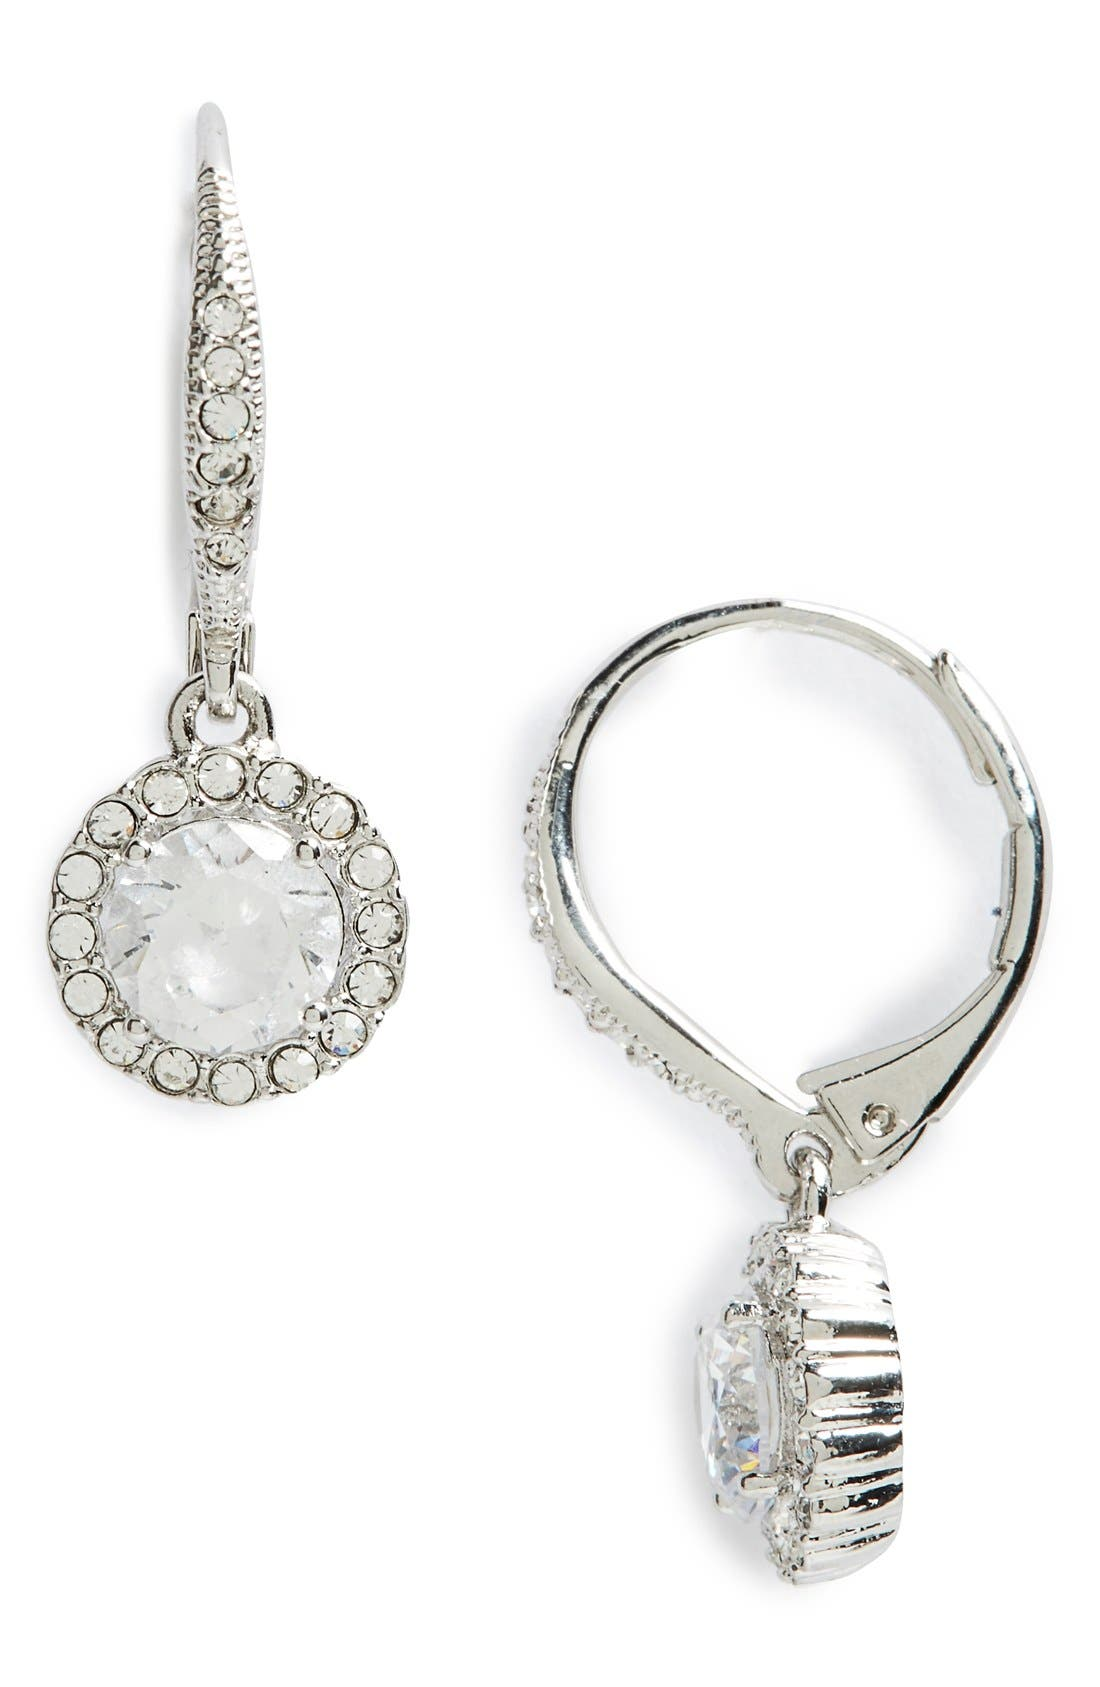 Cubic Zirconia Drop Earrings,                         Main,                         color, SILVER/ CLEAR CRYSTAL